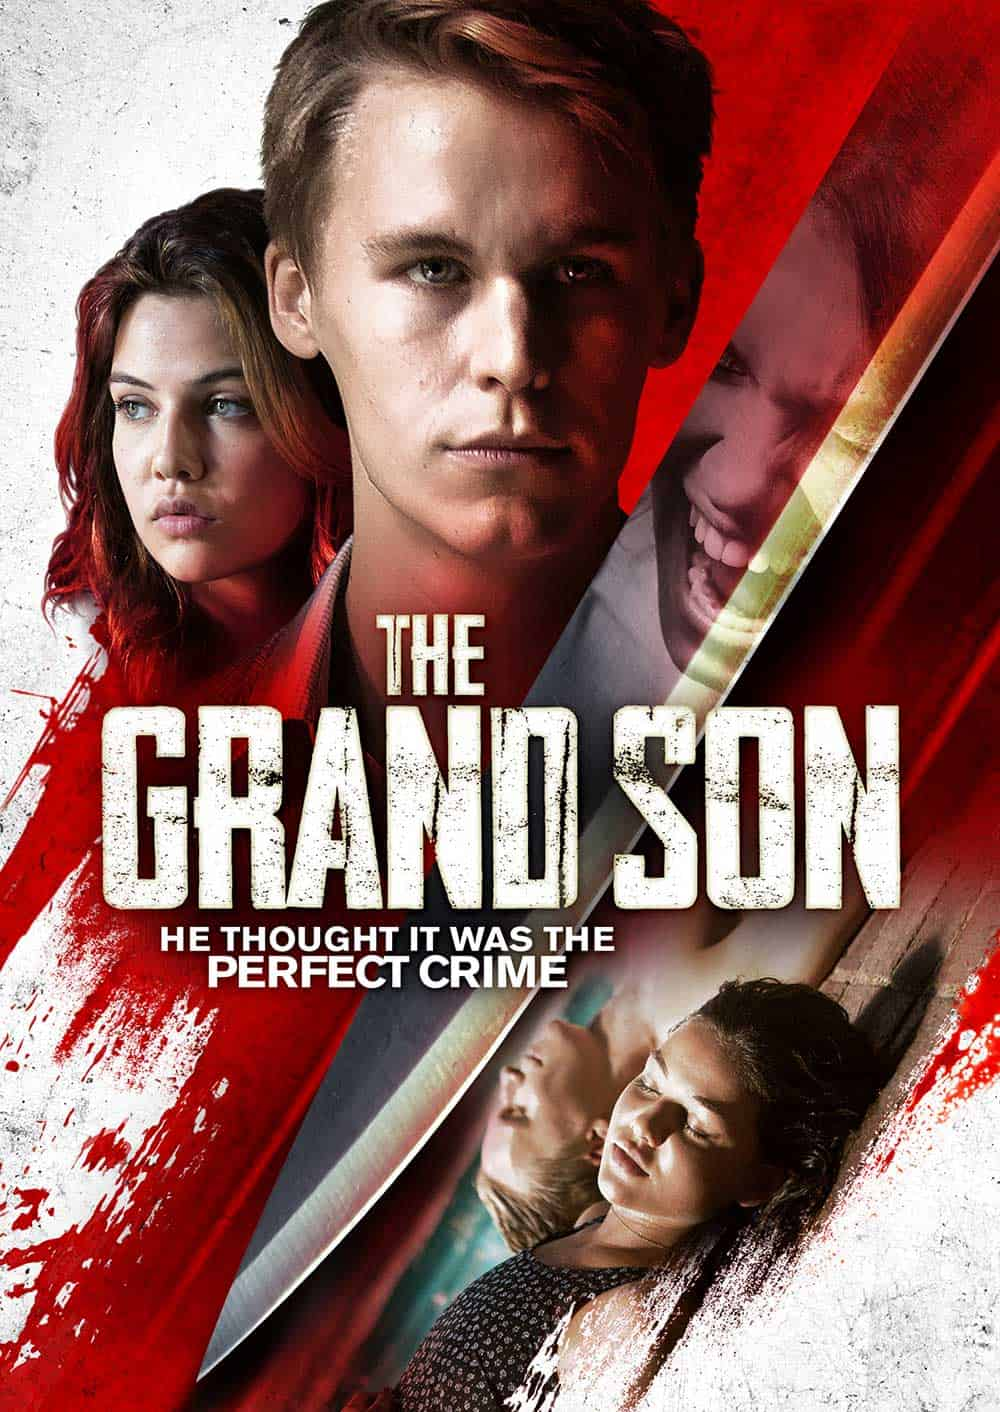 The Grand Son (American Pets) Review - OC Movie Reviews - Movie Reviews, Movie News, Documentary Reviews, Short Films, Short Film Reviews, Trailers, Movie Trailers, Interviews, film reviews, film news, hollywood, indie films, documentaries